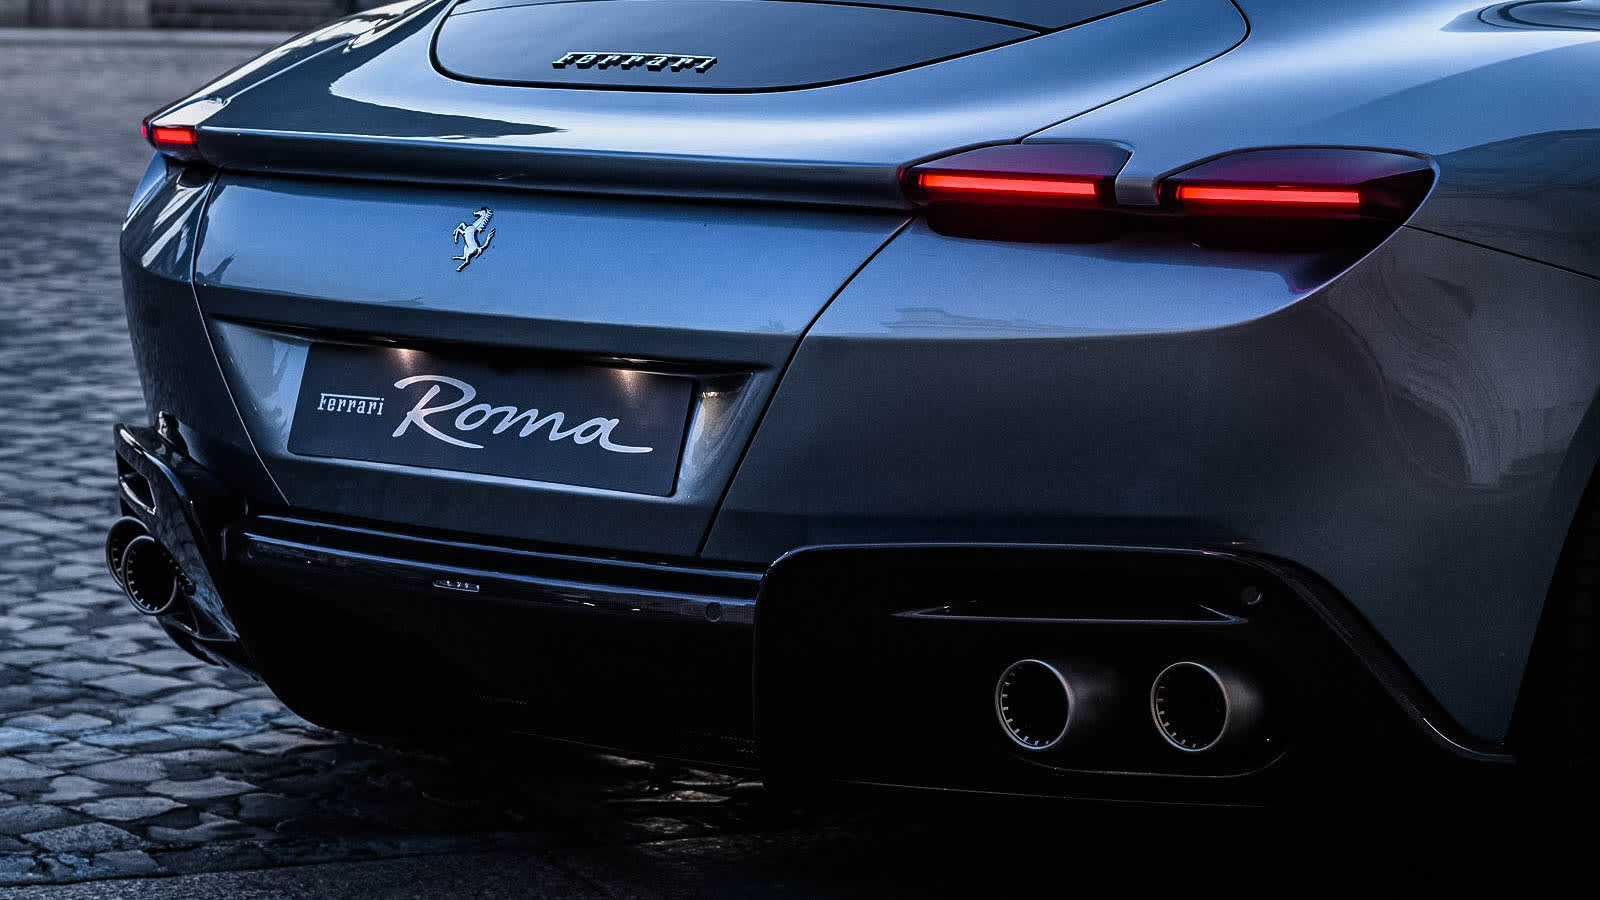 2021 Ferrari Roma Available In Australia Priced From 409 888 Plus On Road Costs Caradvice